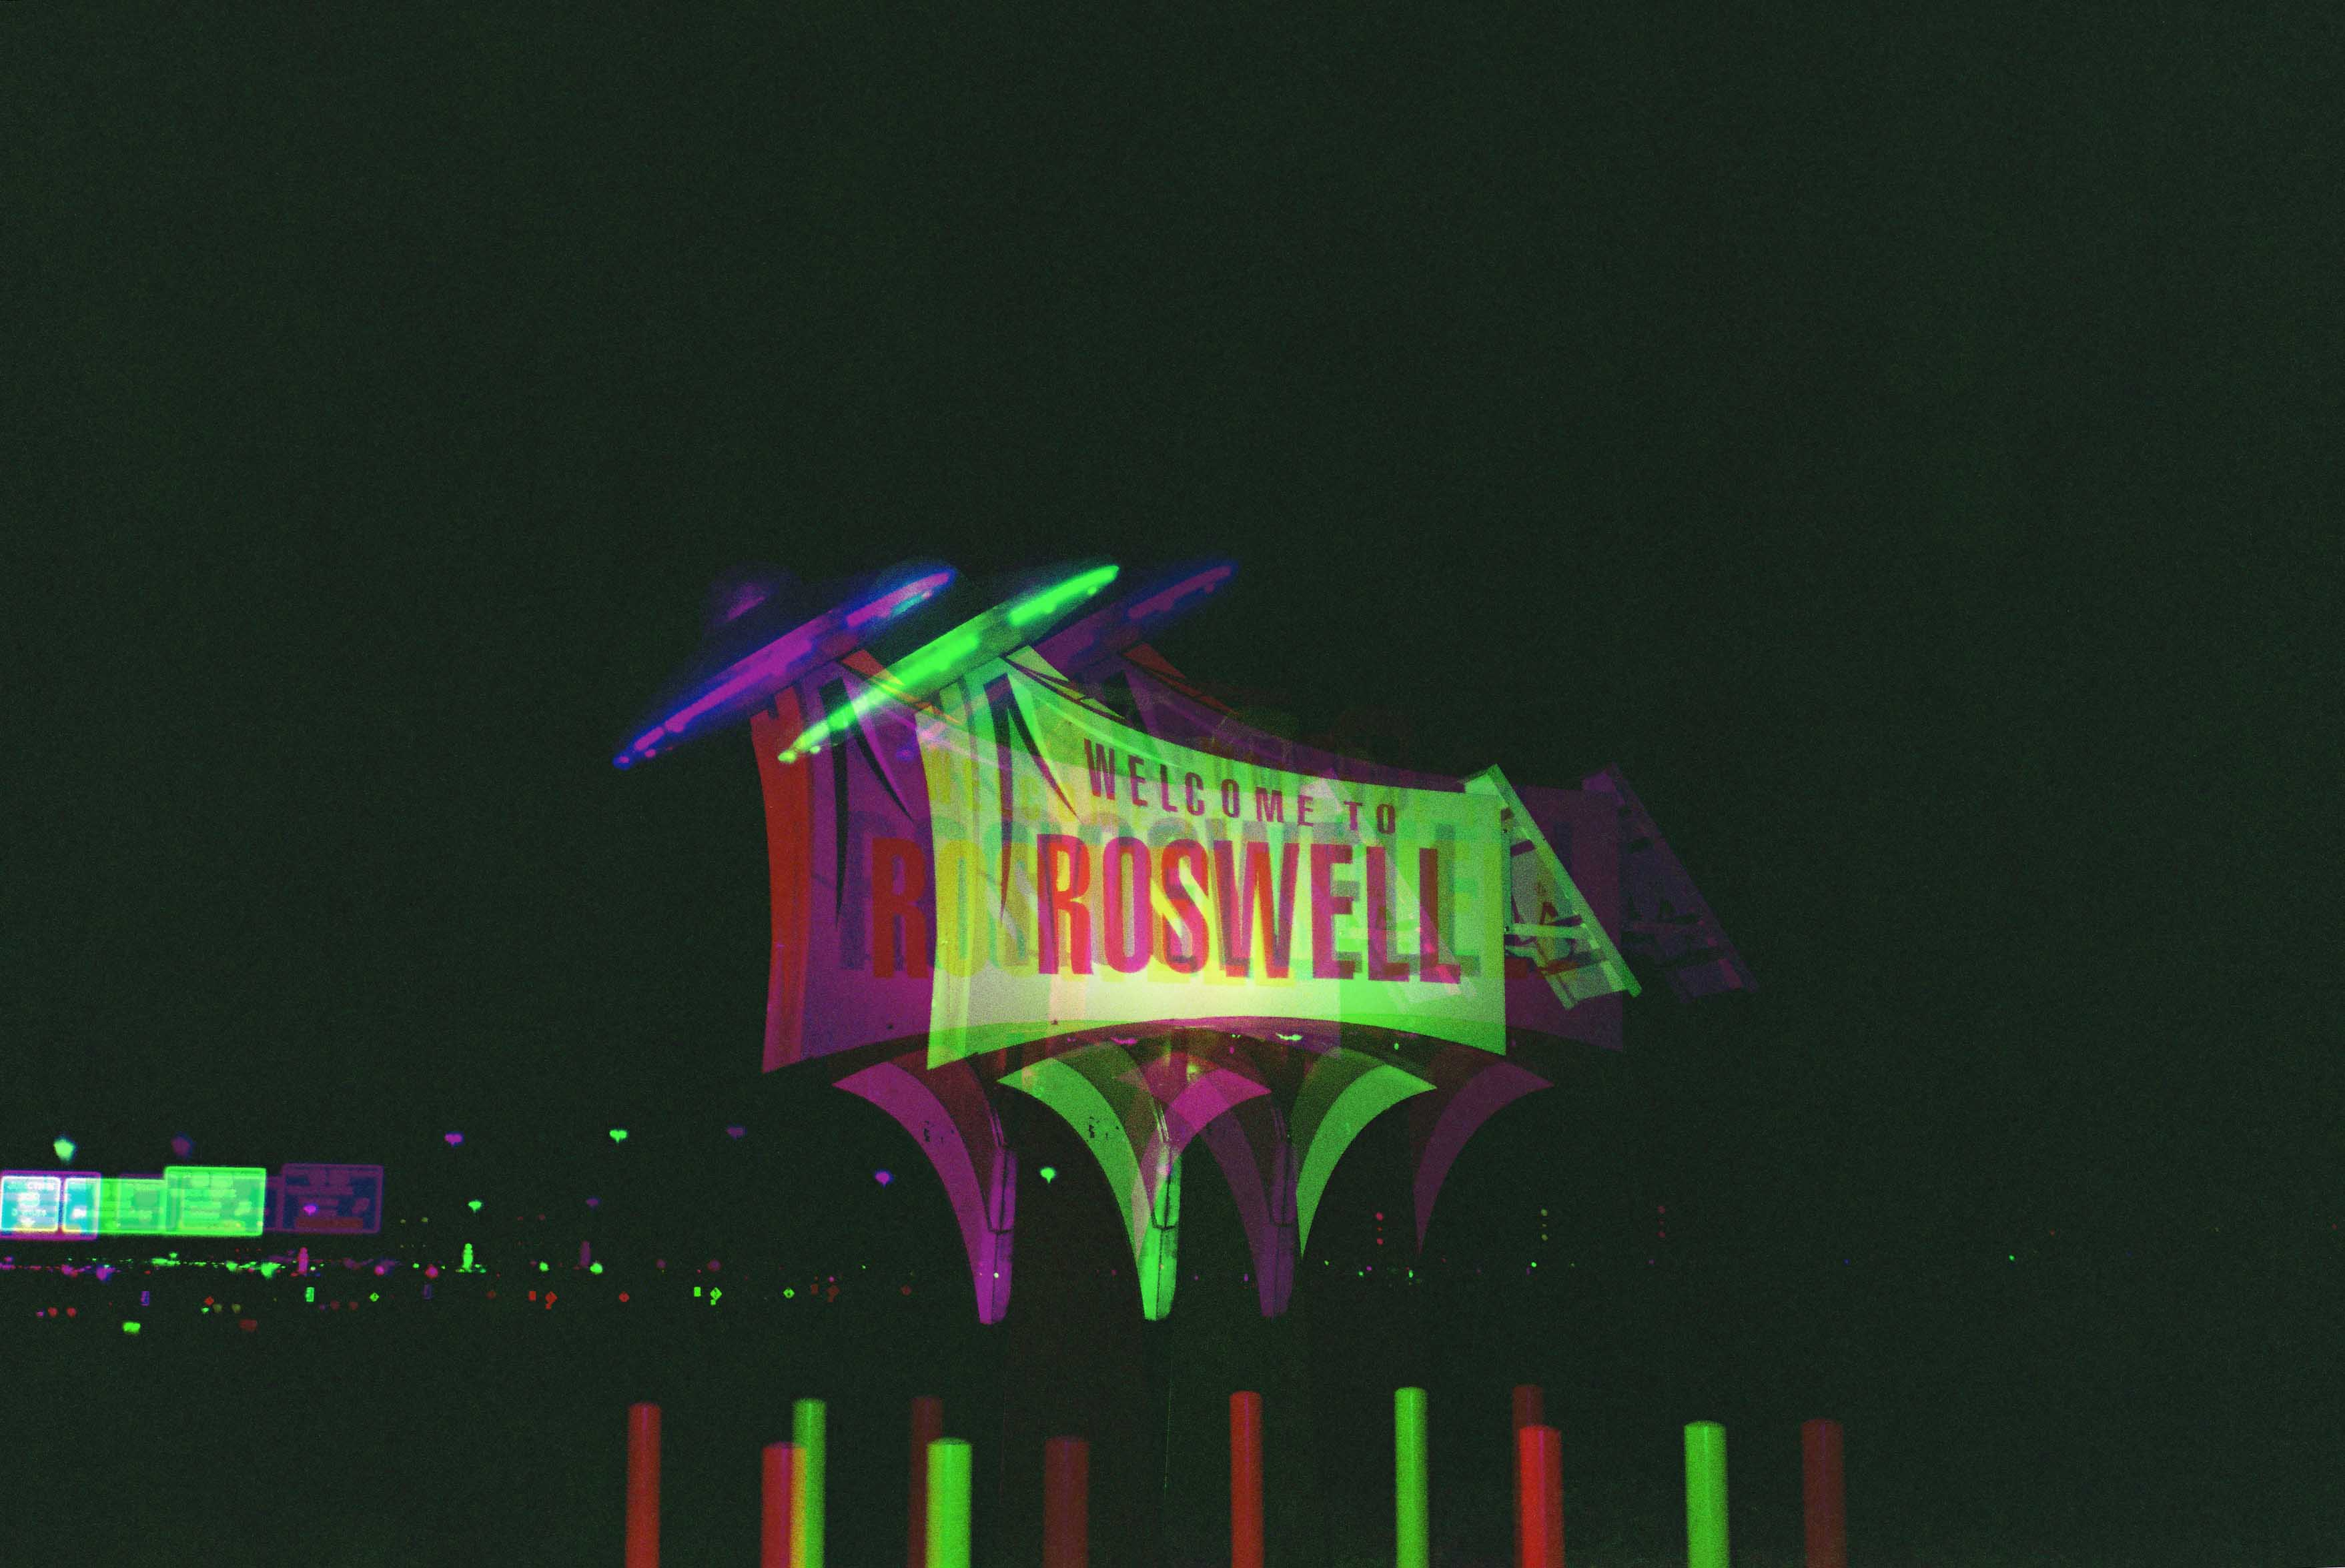 photo - Roswell sign